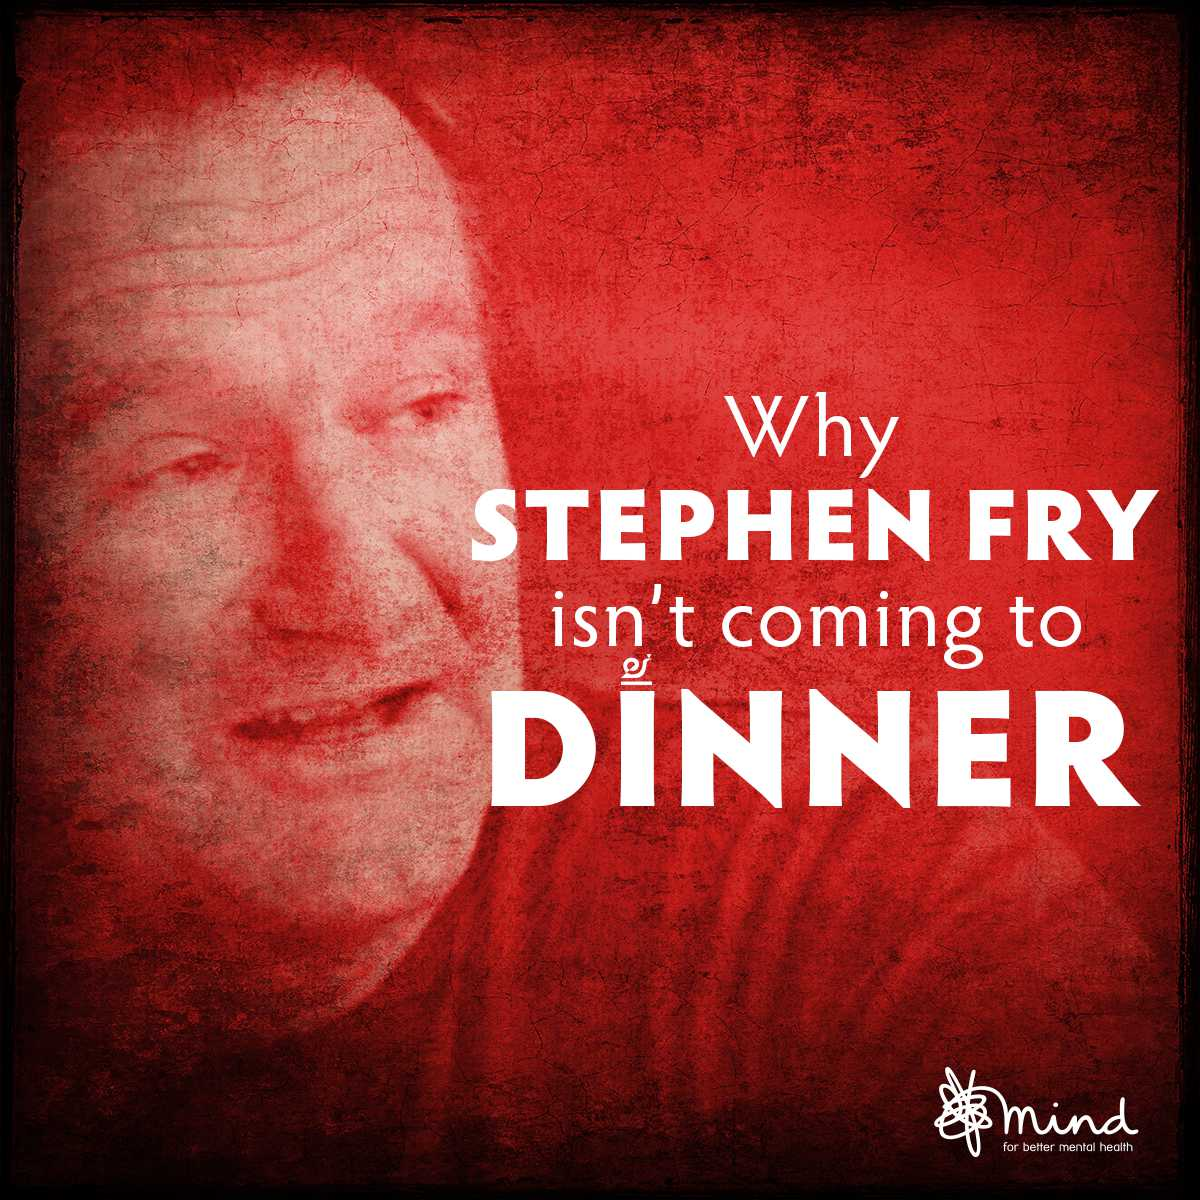 Why Stephen Fry isn't coming to dinner.